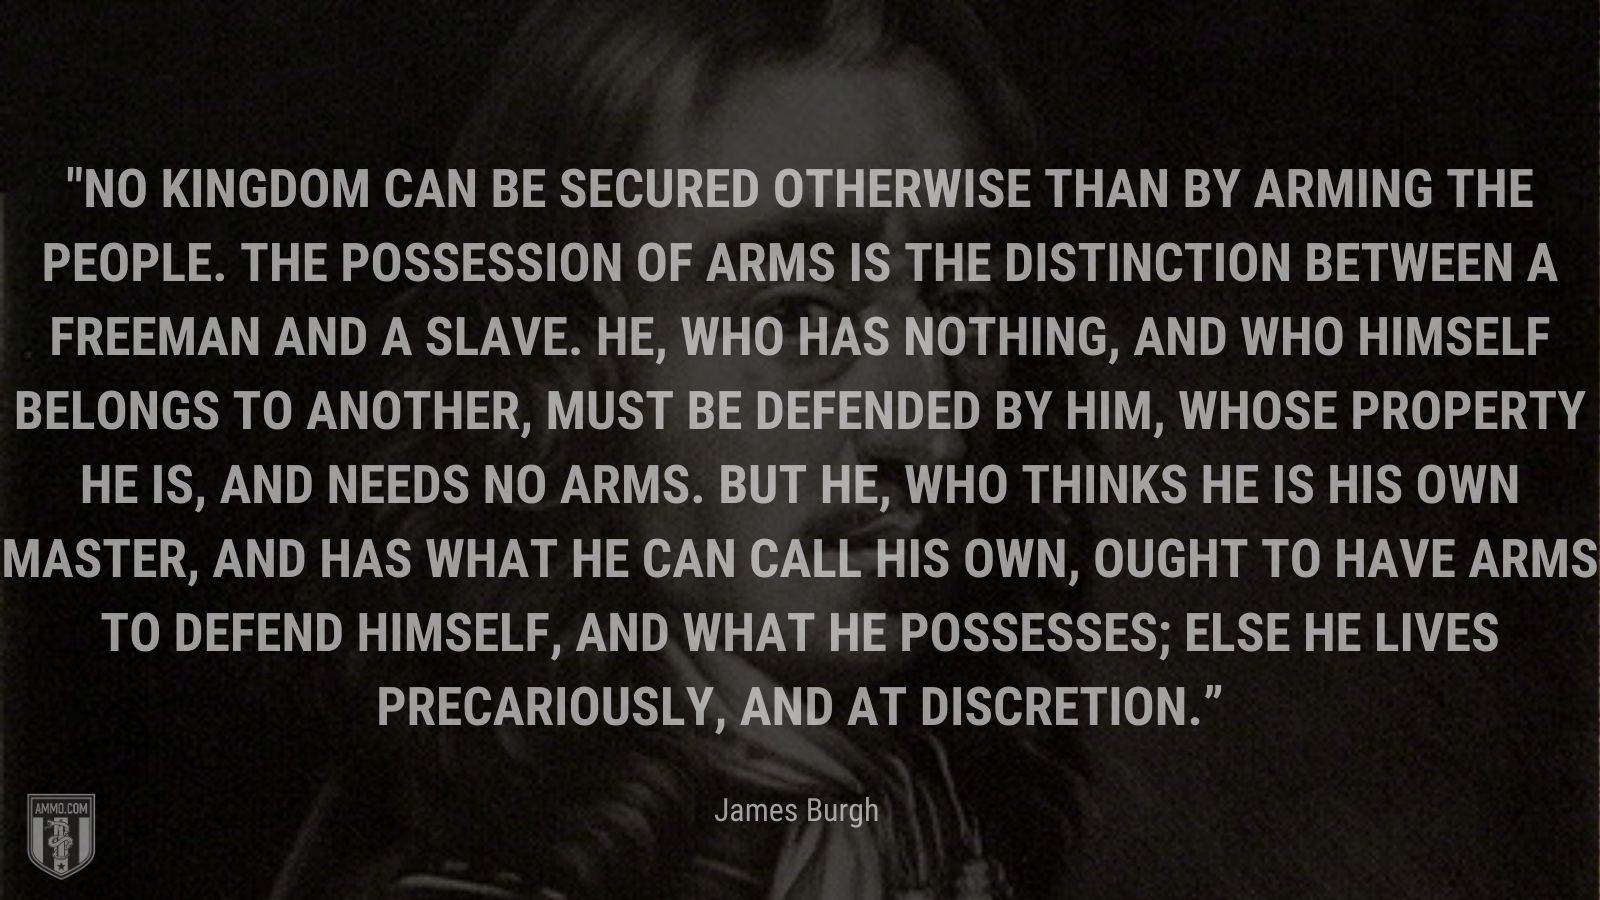 """""""No kingdom can be secured otherwise than by arming the people. The possession of arms is the distinction between a freeman and a slave. He, who has nothing, and who himself belongs to another, must be defended by him, whose property he is, and needs no arms. But he, who thinks he is his own master, and has what he can call his own, ought to have arms to defend himself, and what he possesses; else he lives precariously, and at discretion."""" - James Burgh"""